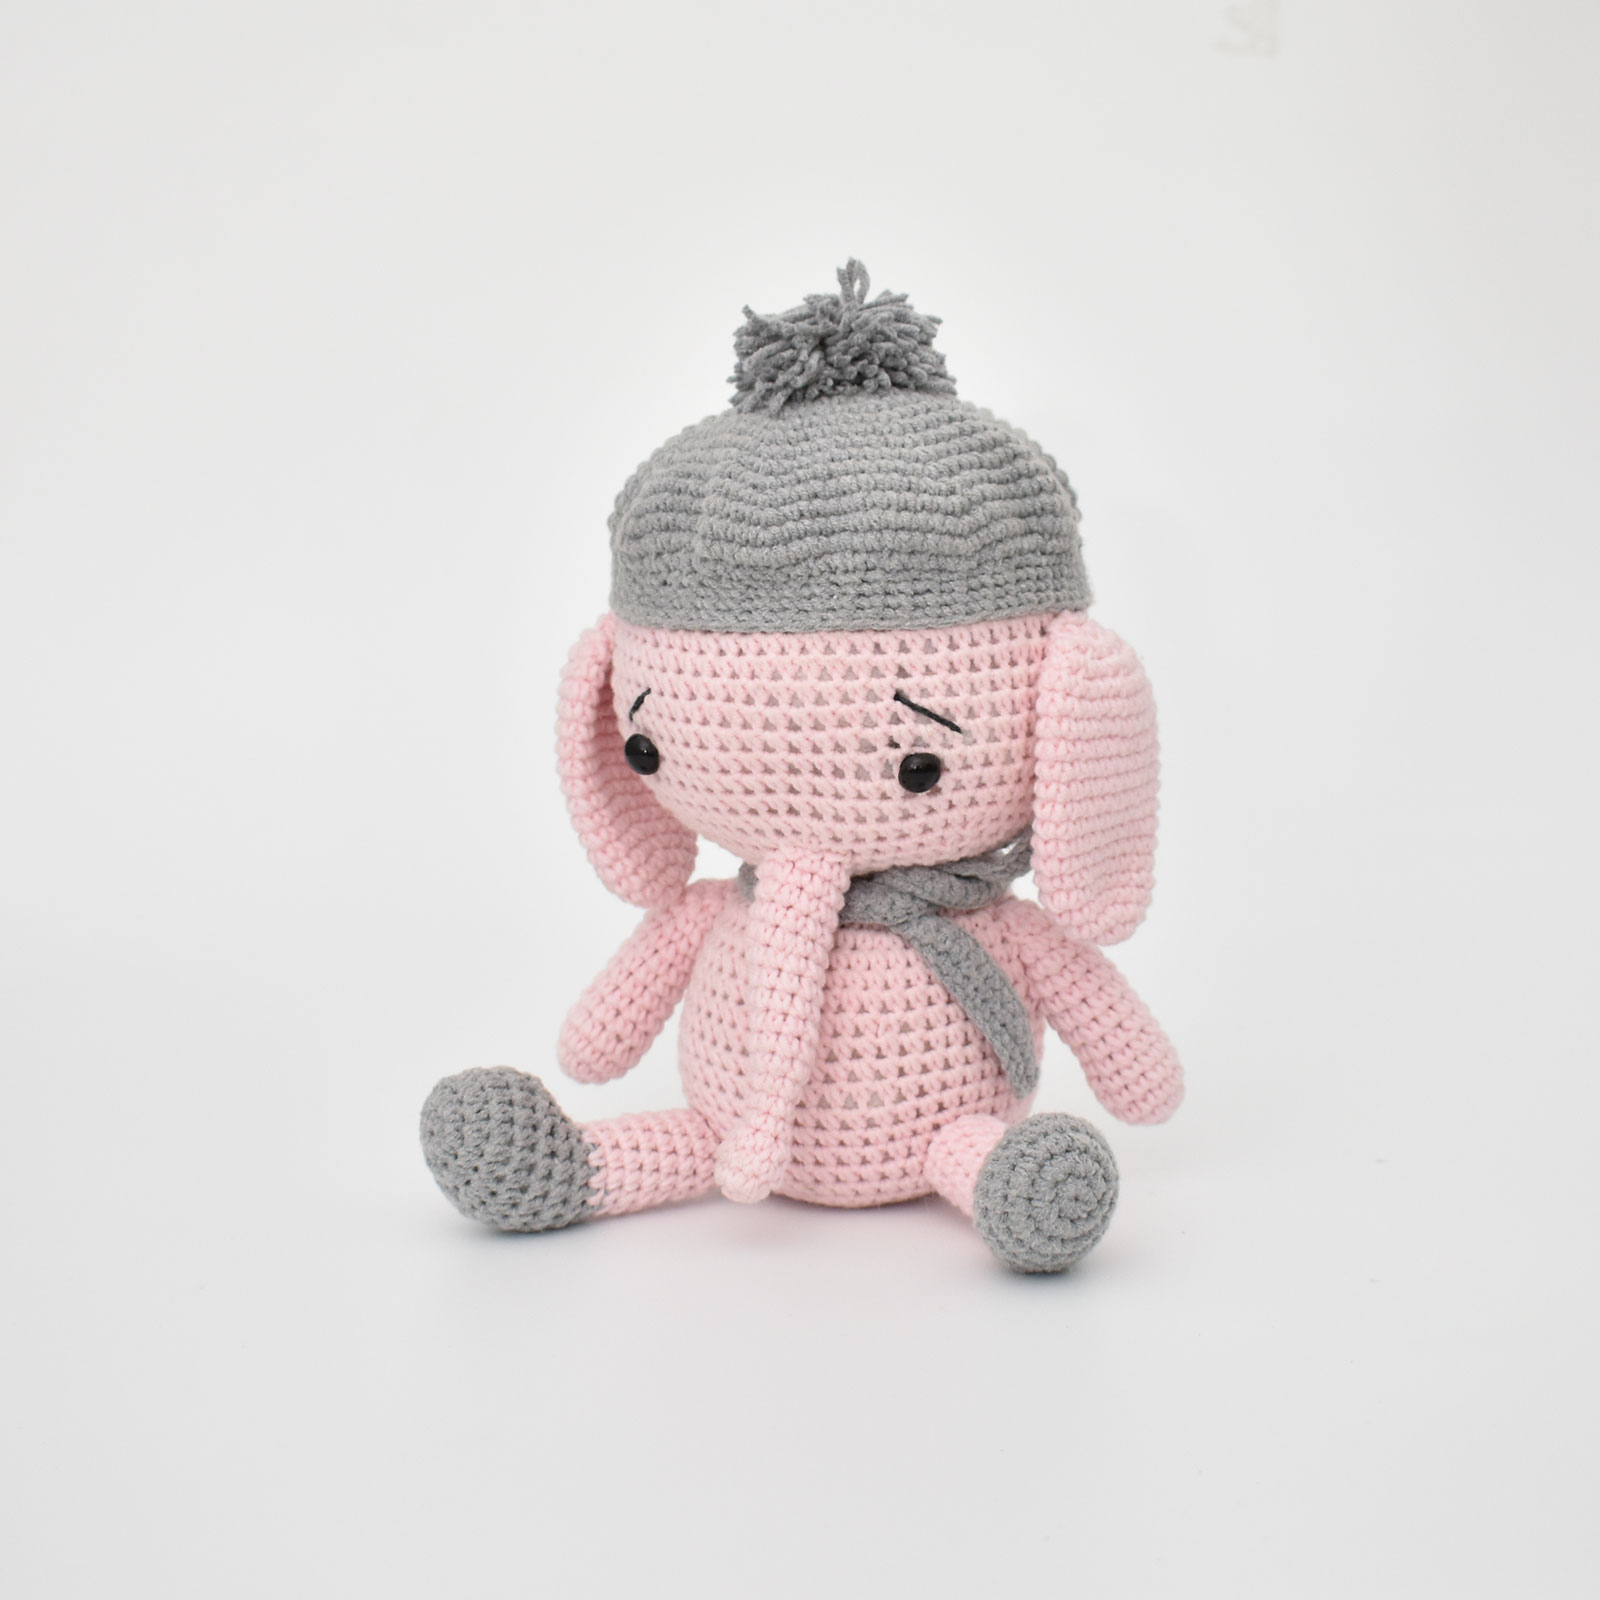 Free Knitting Patterns For Dolls Hats Details About Ba Elephant With Hat Handmade Amigurumi Stuffed Toy Knitting Crochet Doll